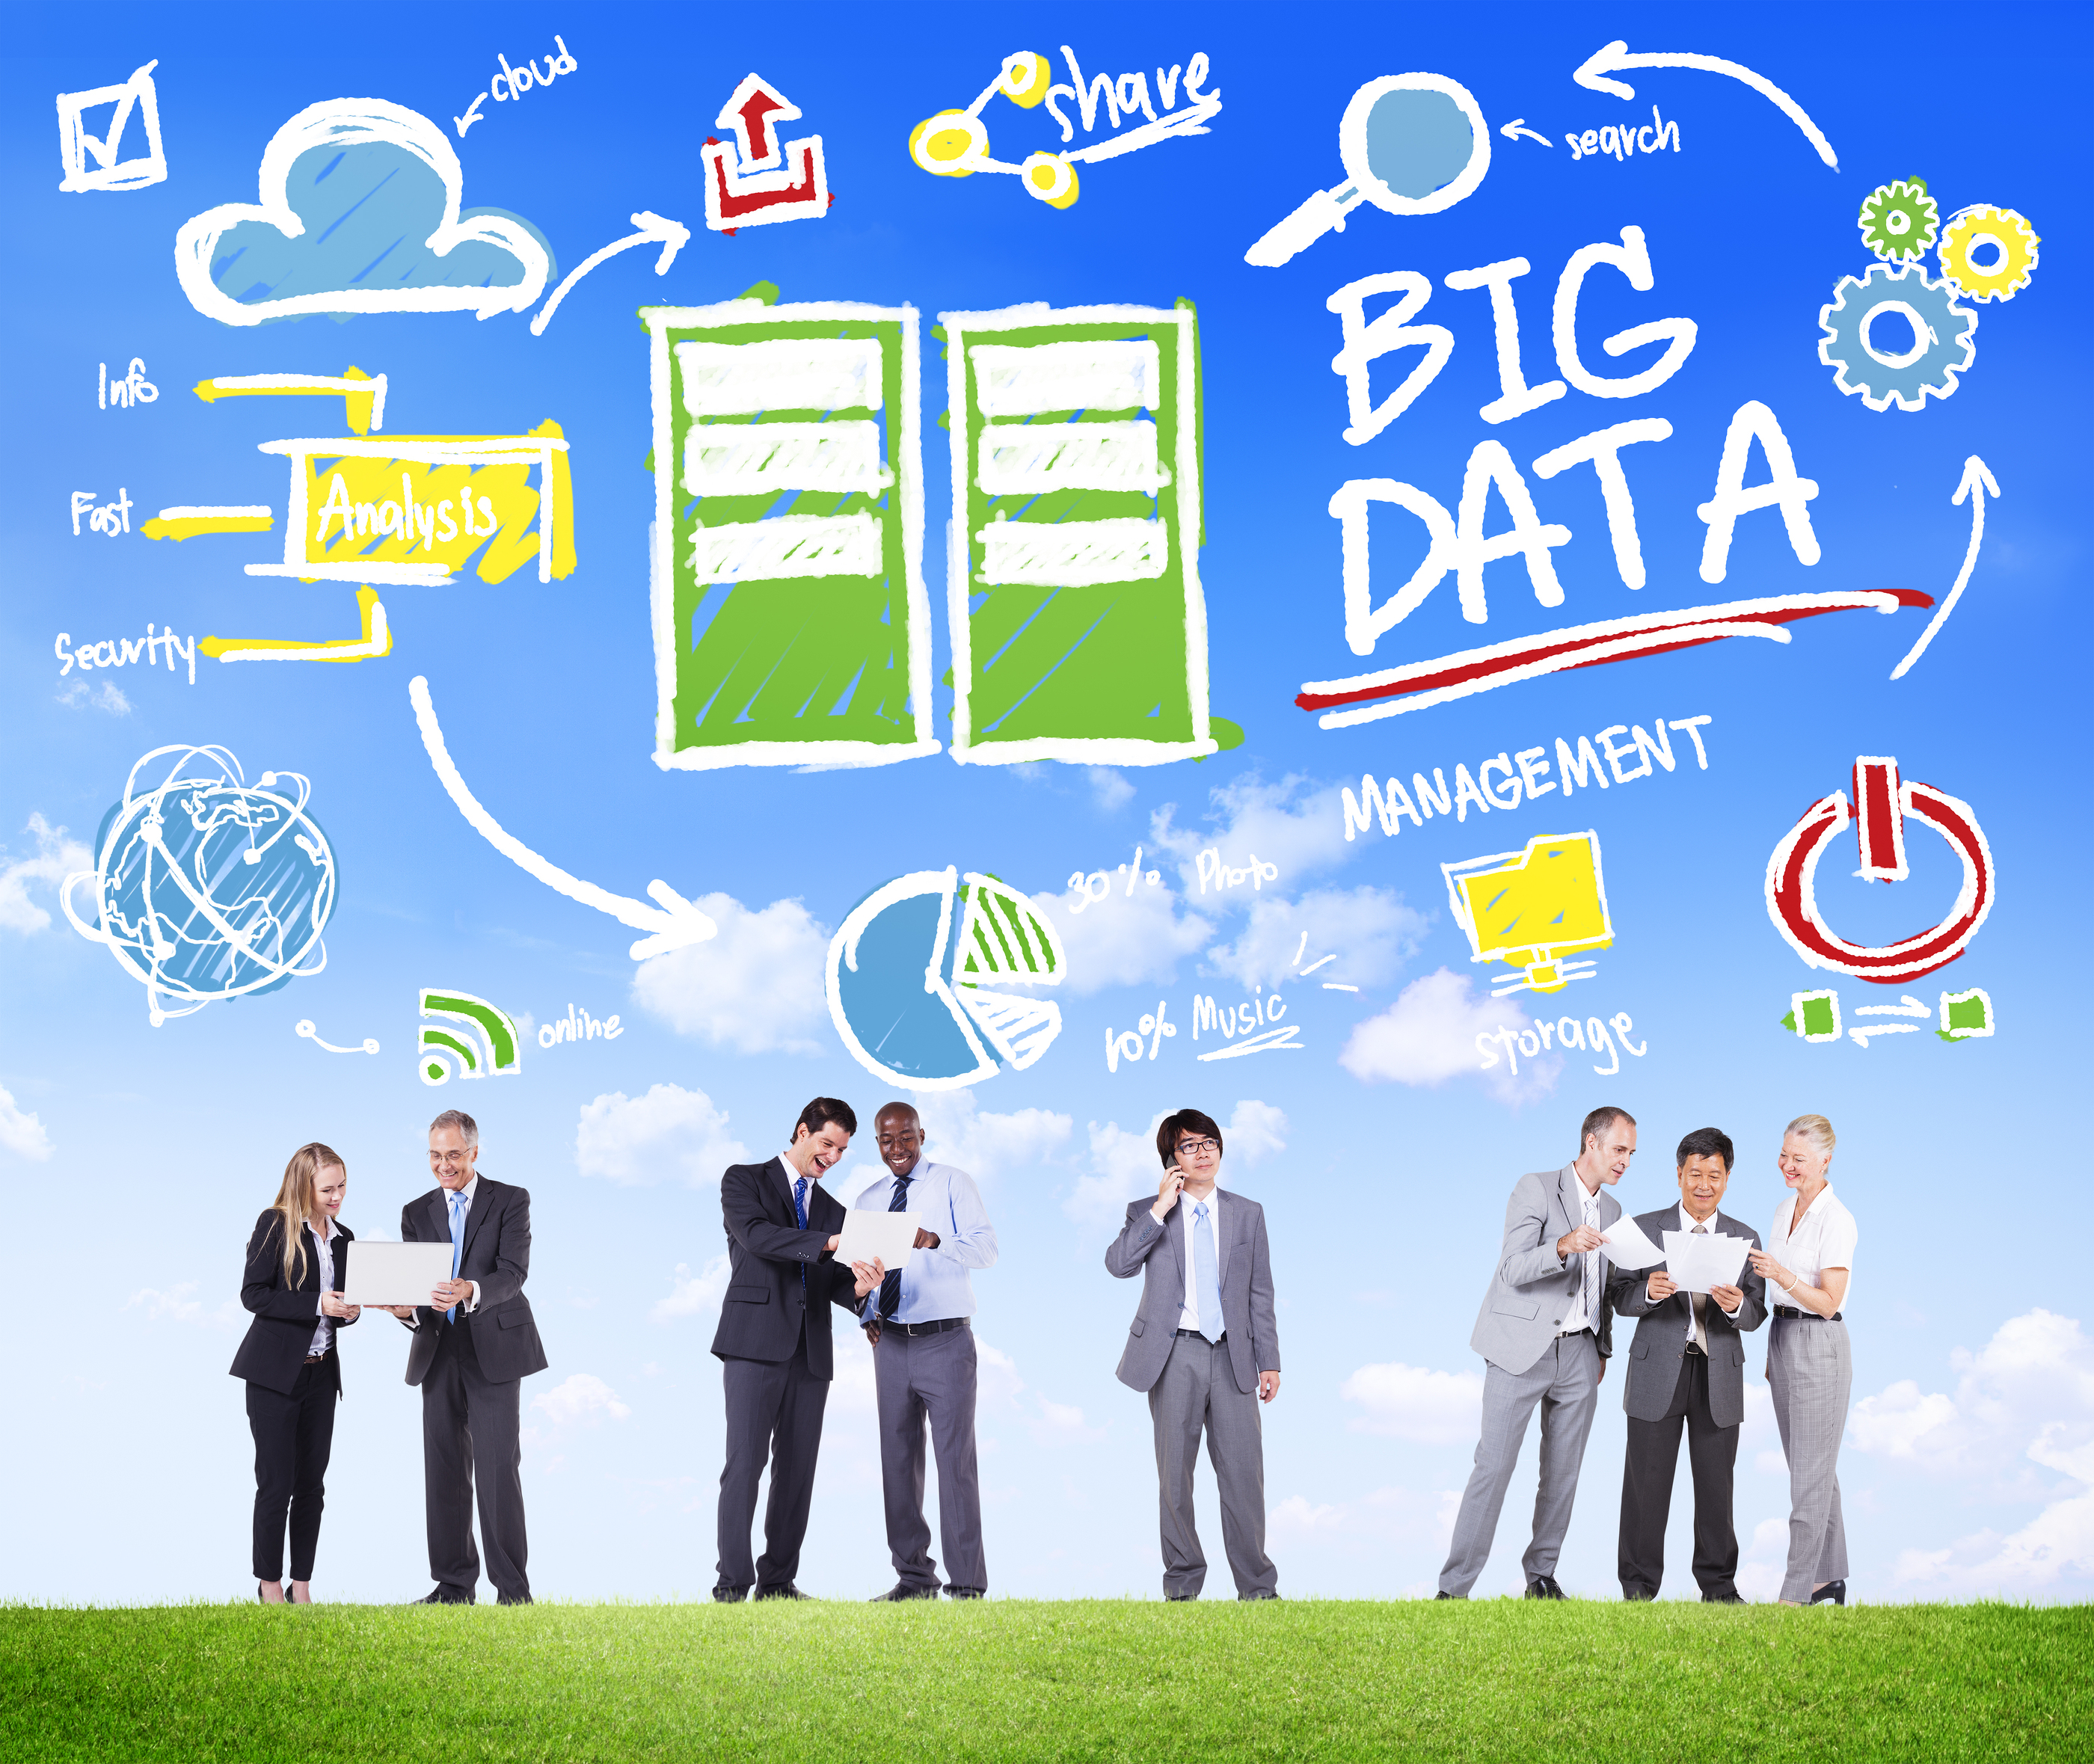 Diversity Business People Big Data Share Discussion Concept